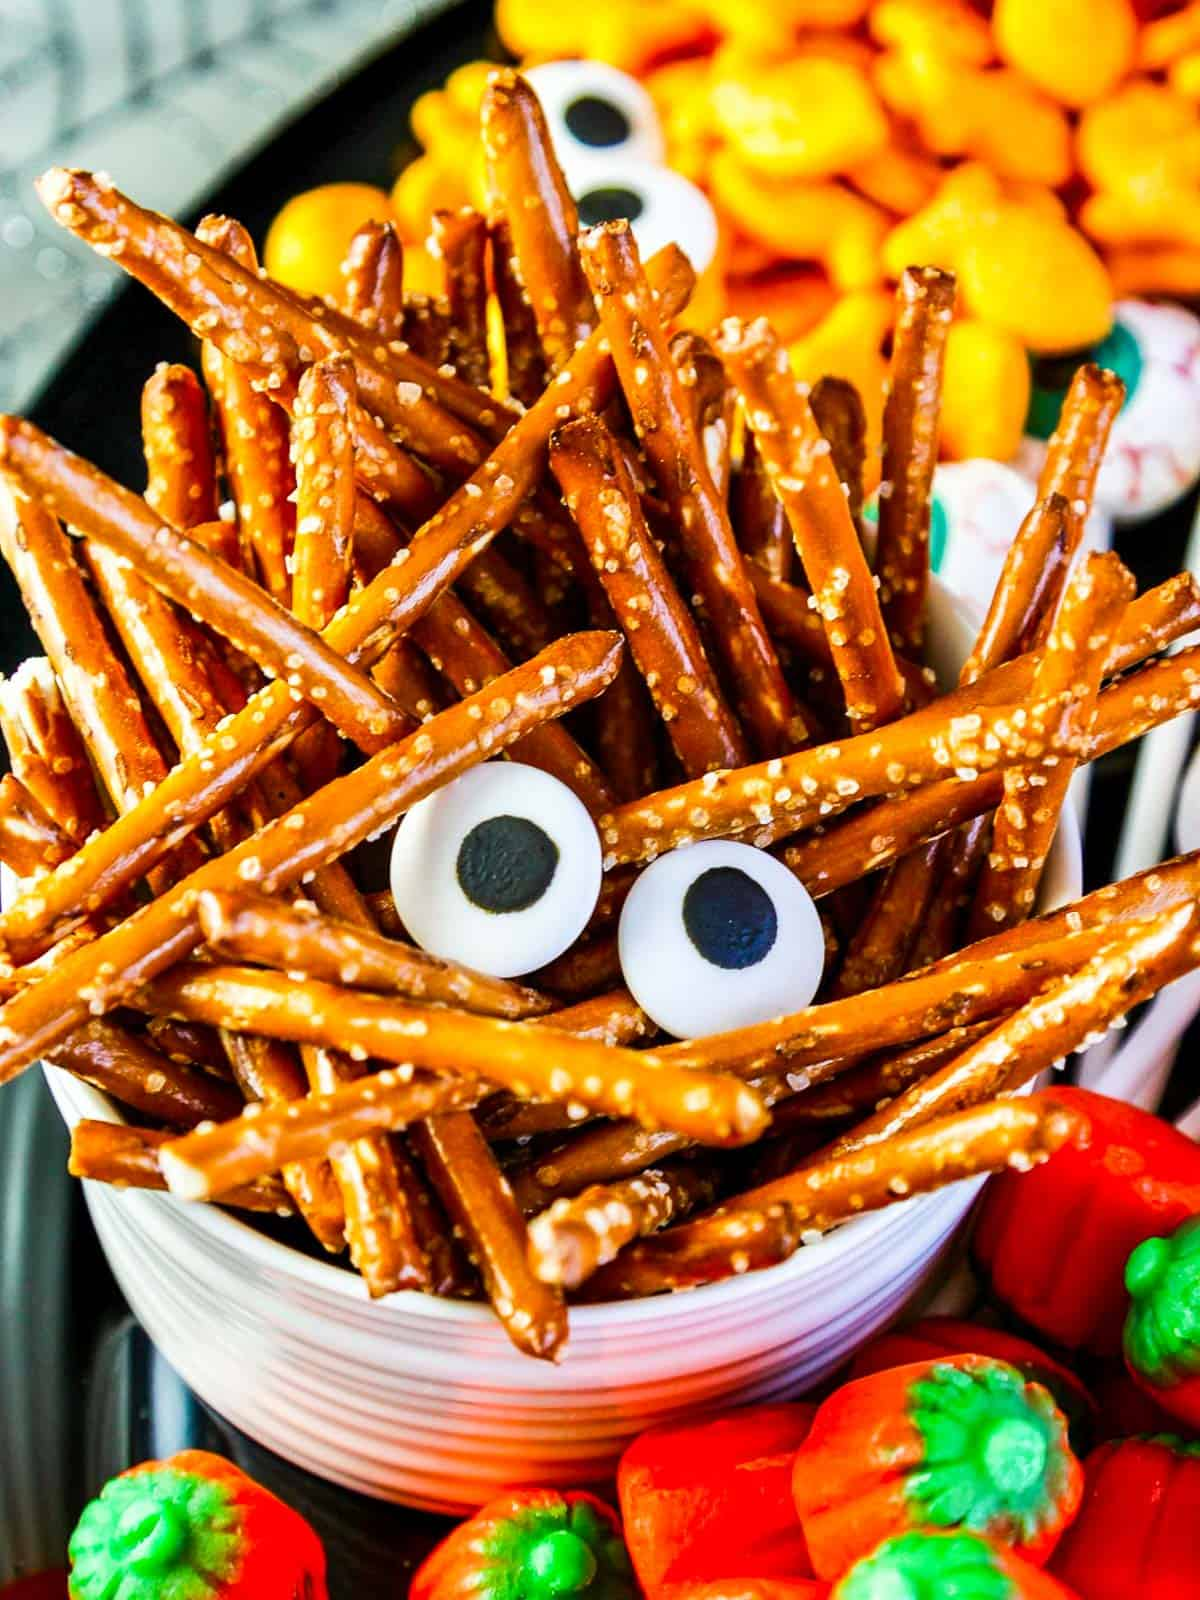 Pretzel sticks piled into a small white bowl with candy eyes for a Halloween Snack.